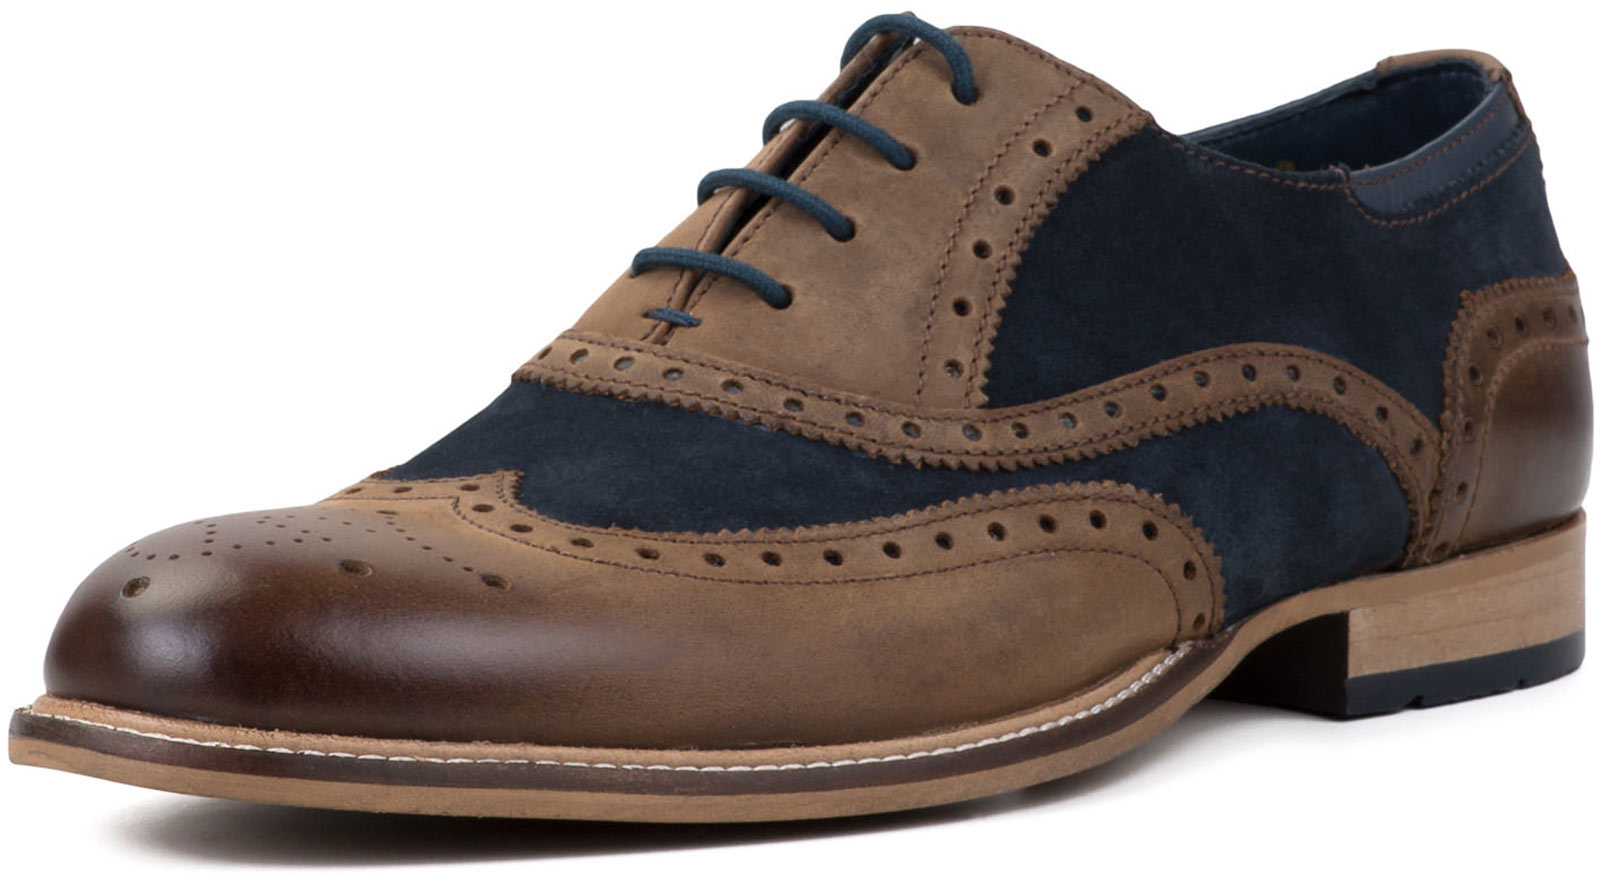 Goodwin Smith Edwood Leder/Veloursleder Herren Oxford HAFERLSCHUH